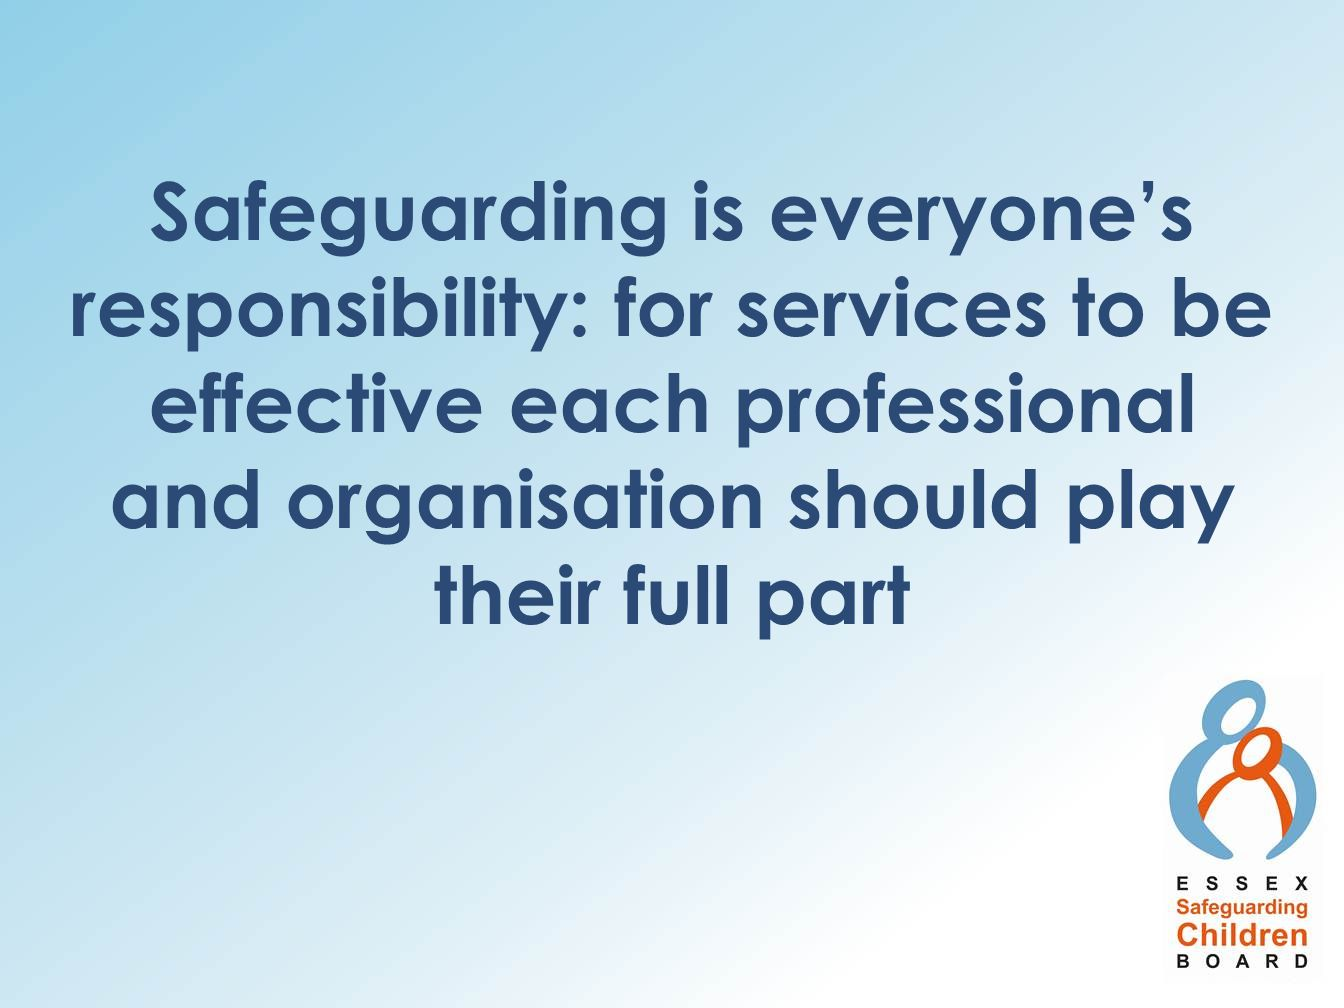 Safeguarding is everyone's responsibility: for services to be effective each professional and organisation should play their full part